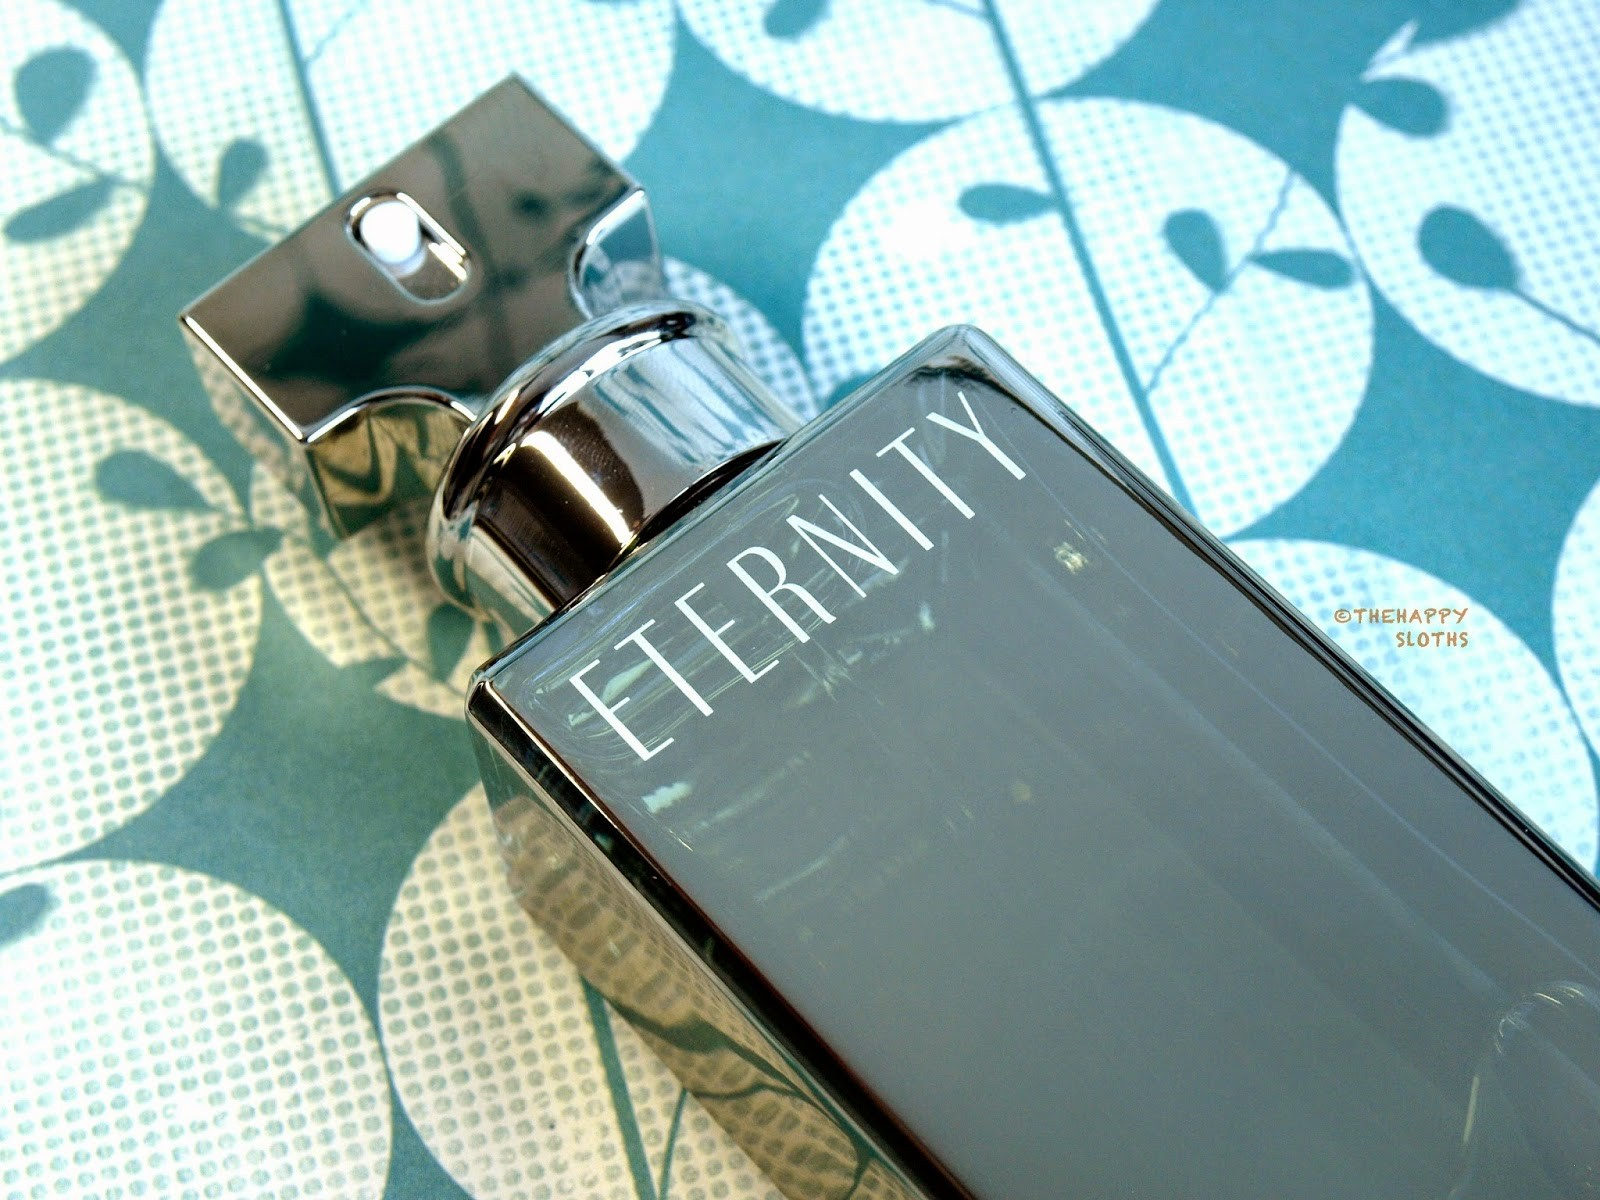 Eternity 25th Anniversary Edition for Women edp Calvin Klein - ♀ женский парфюм, 2014 год.